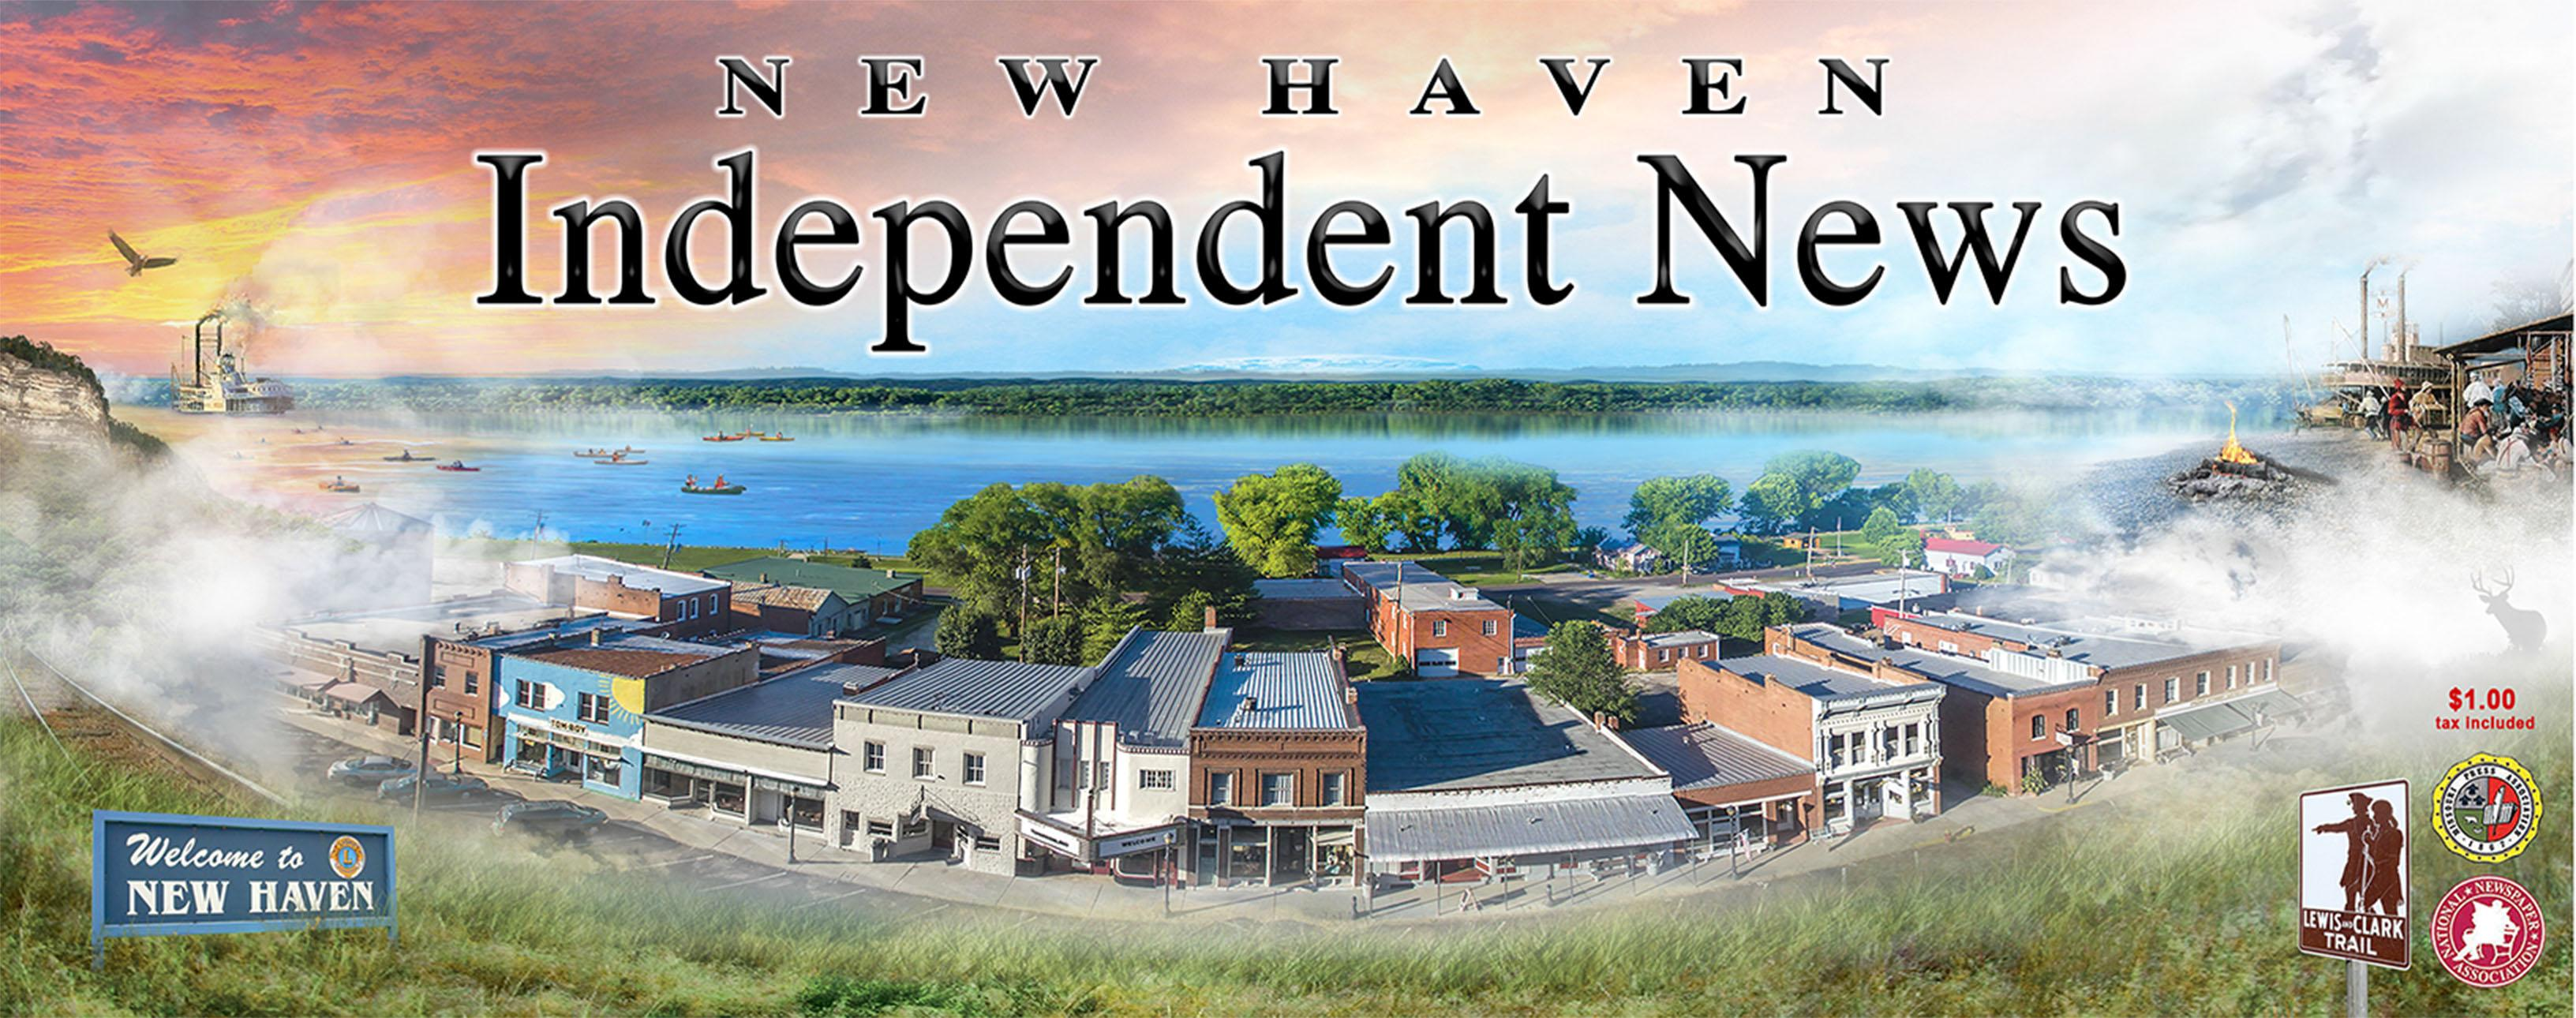 New Haven Independent News